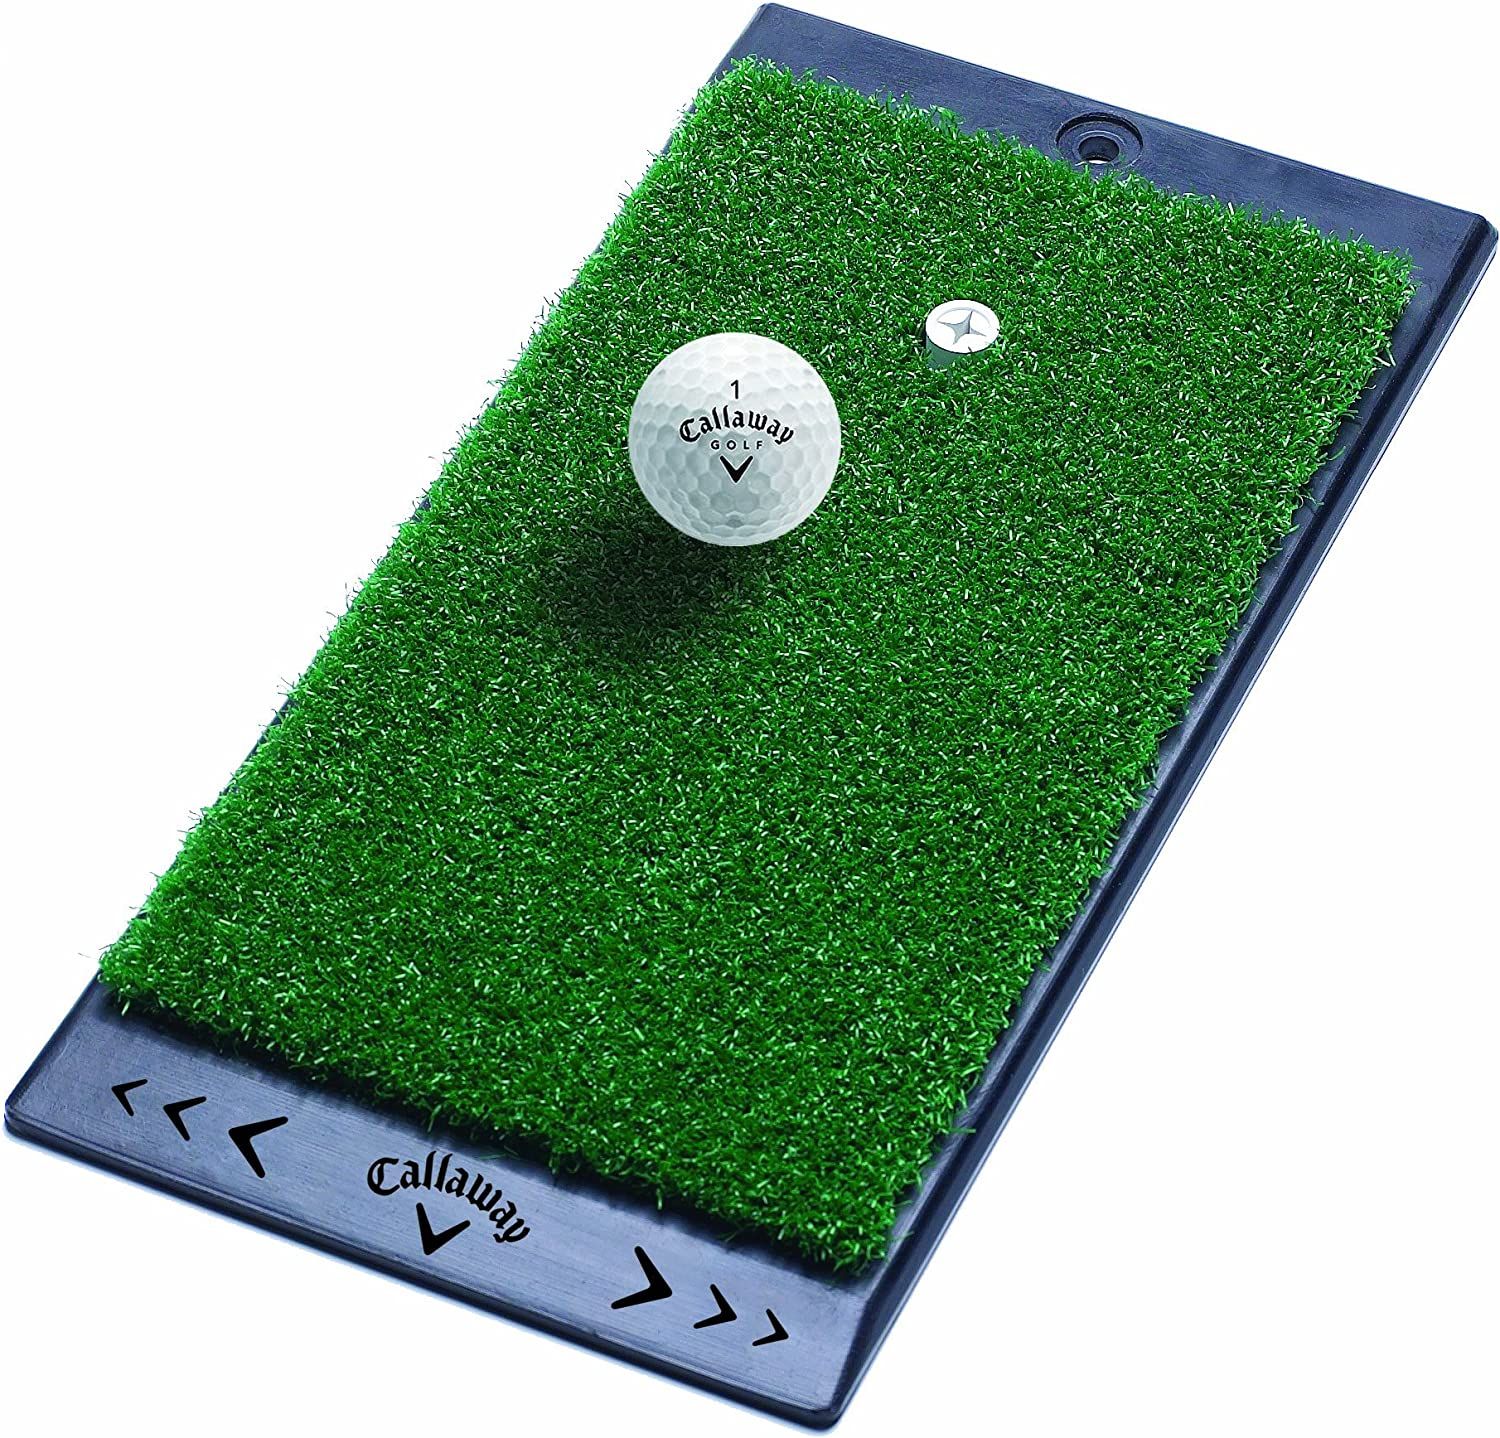 Callaway Golf FT Launch Zone Hitting Mat